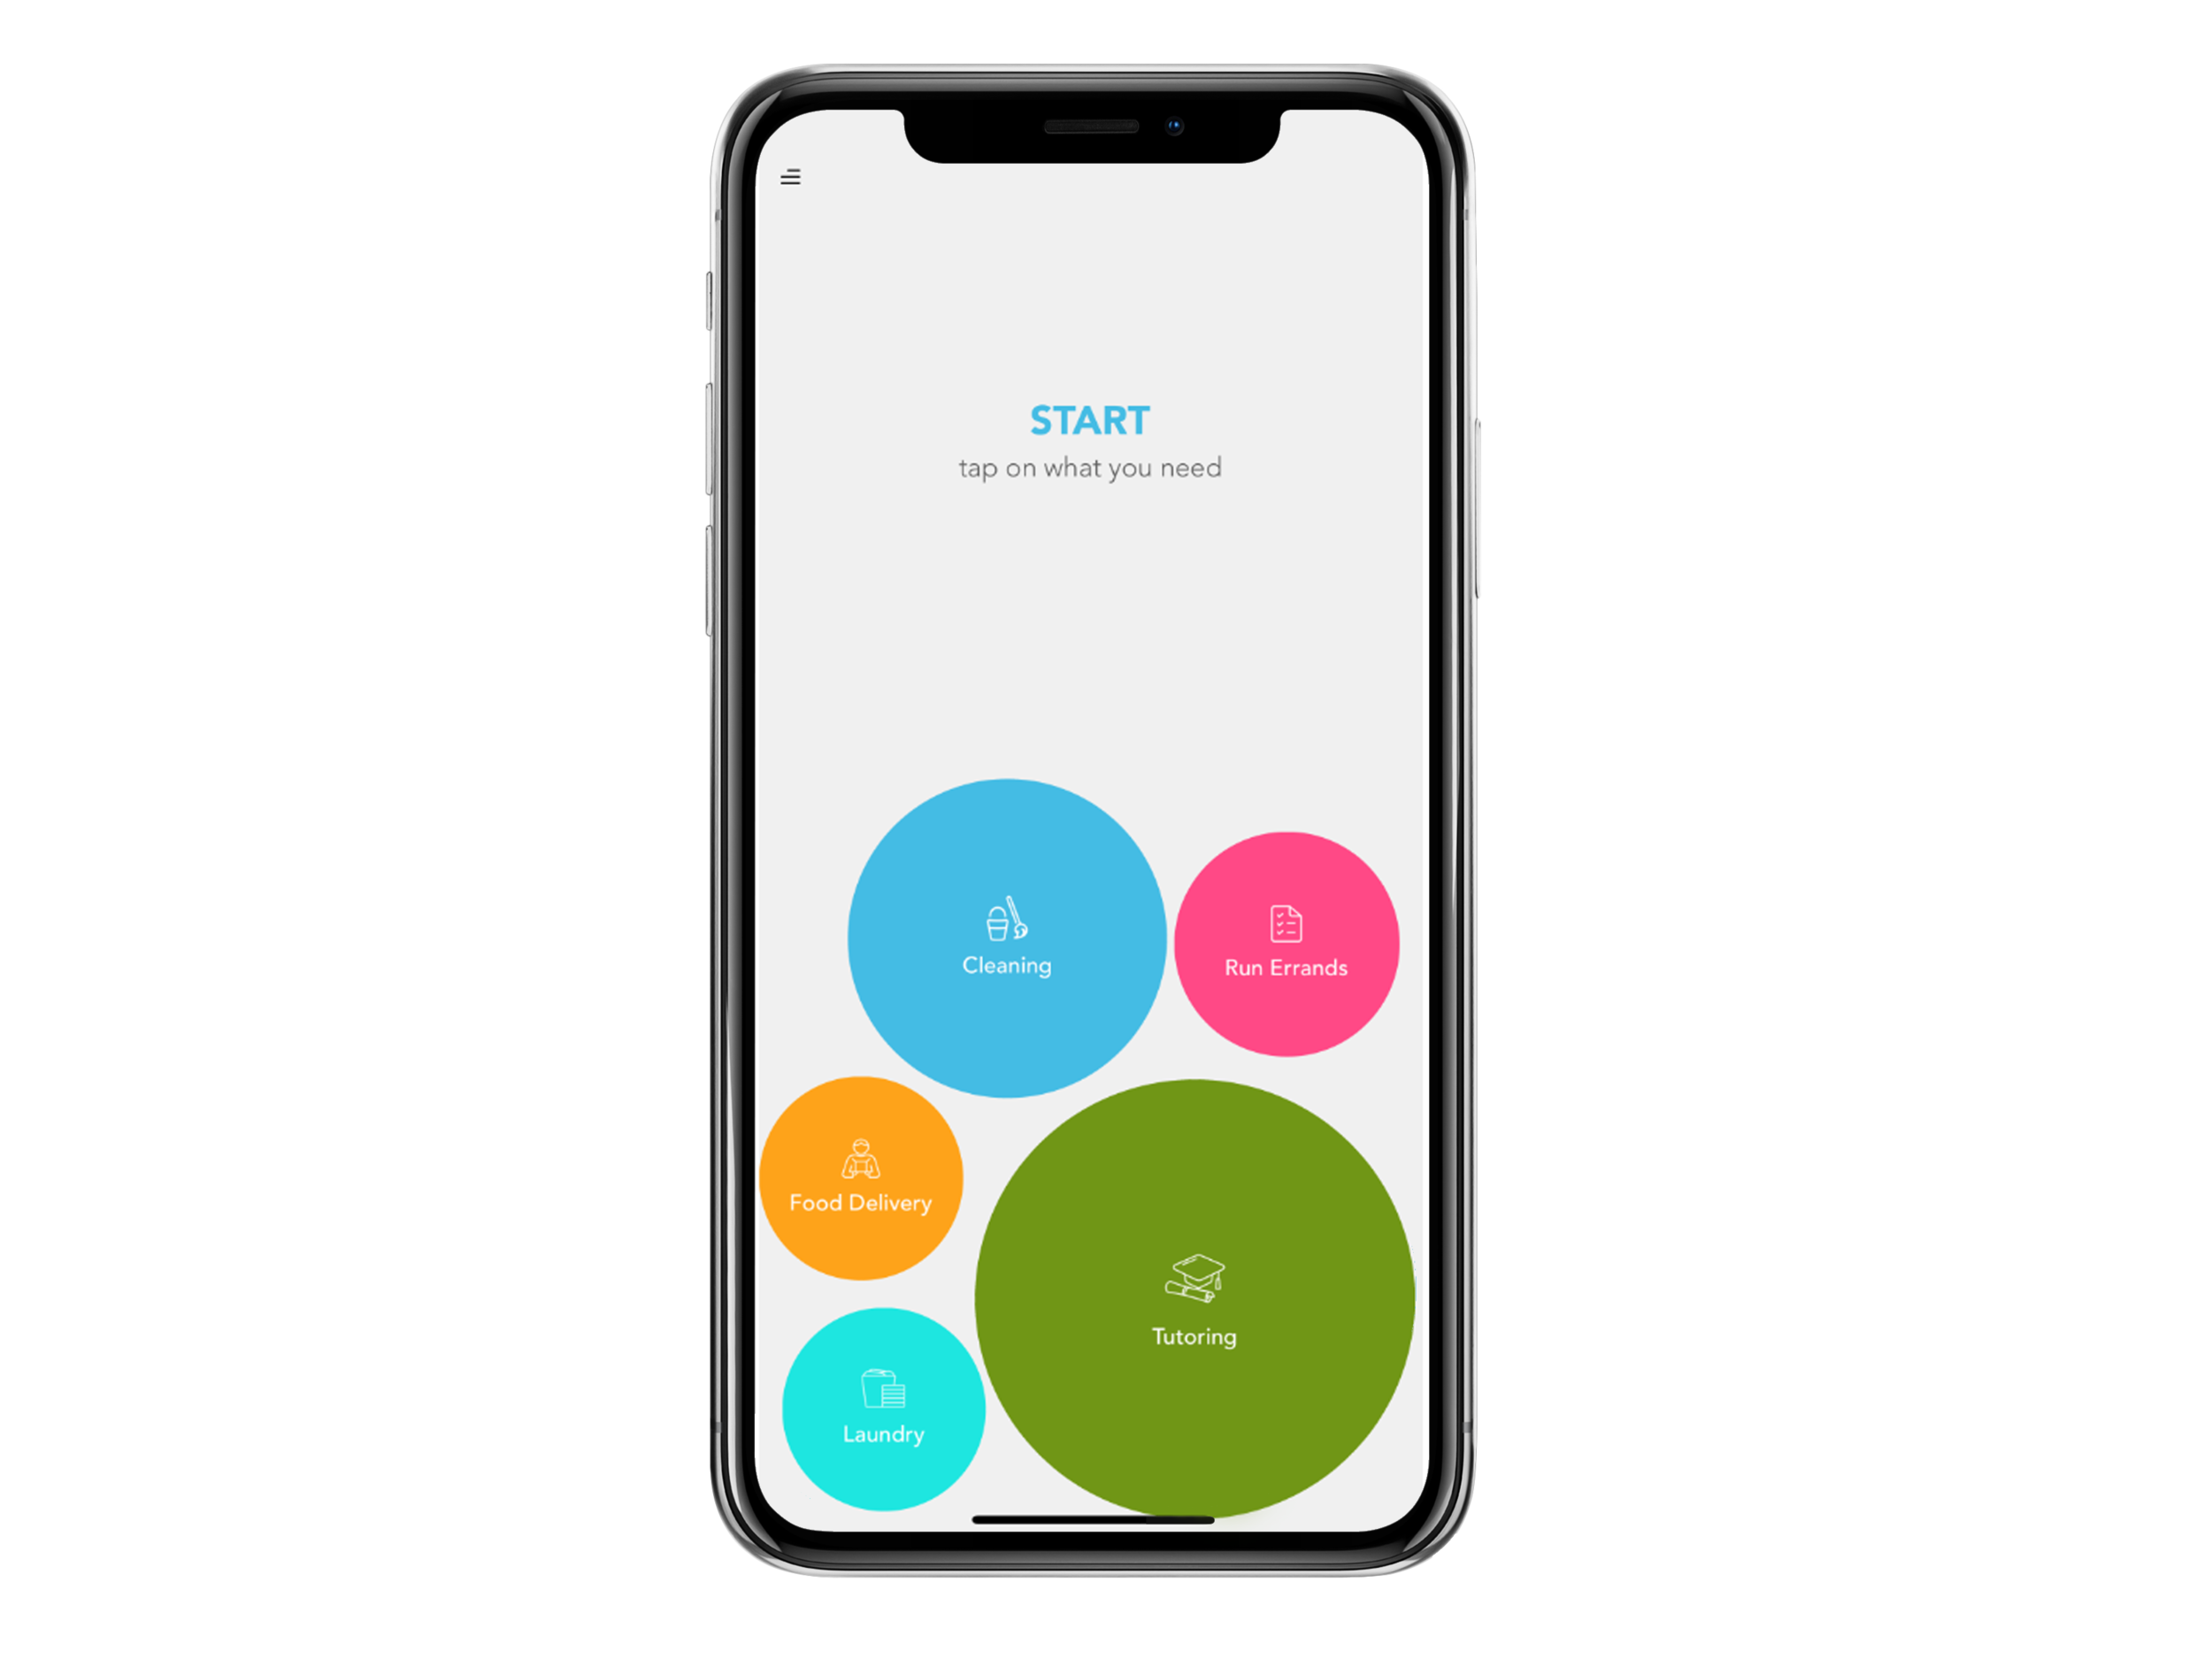 Select a Task - Need help with a task? With Dormzi's easy to use interface, you can quickly select the task you want to be completed, and a Dormzi will be at your door in moments.